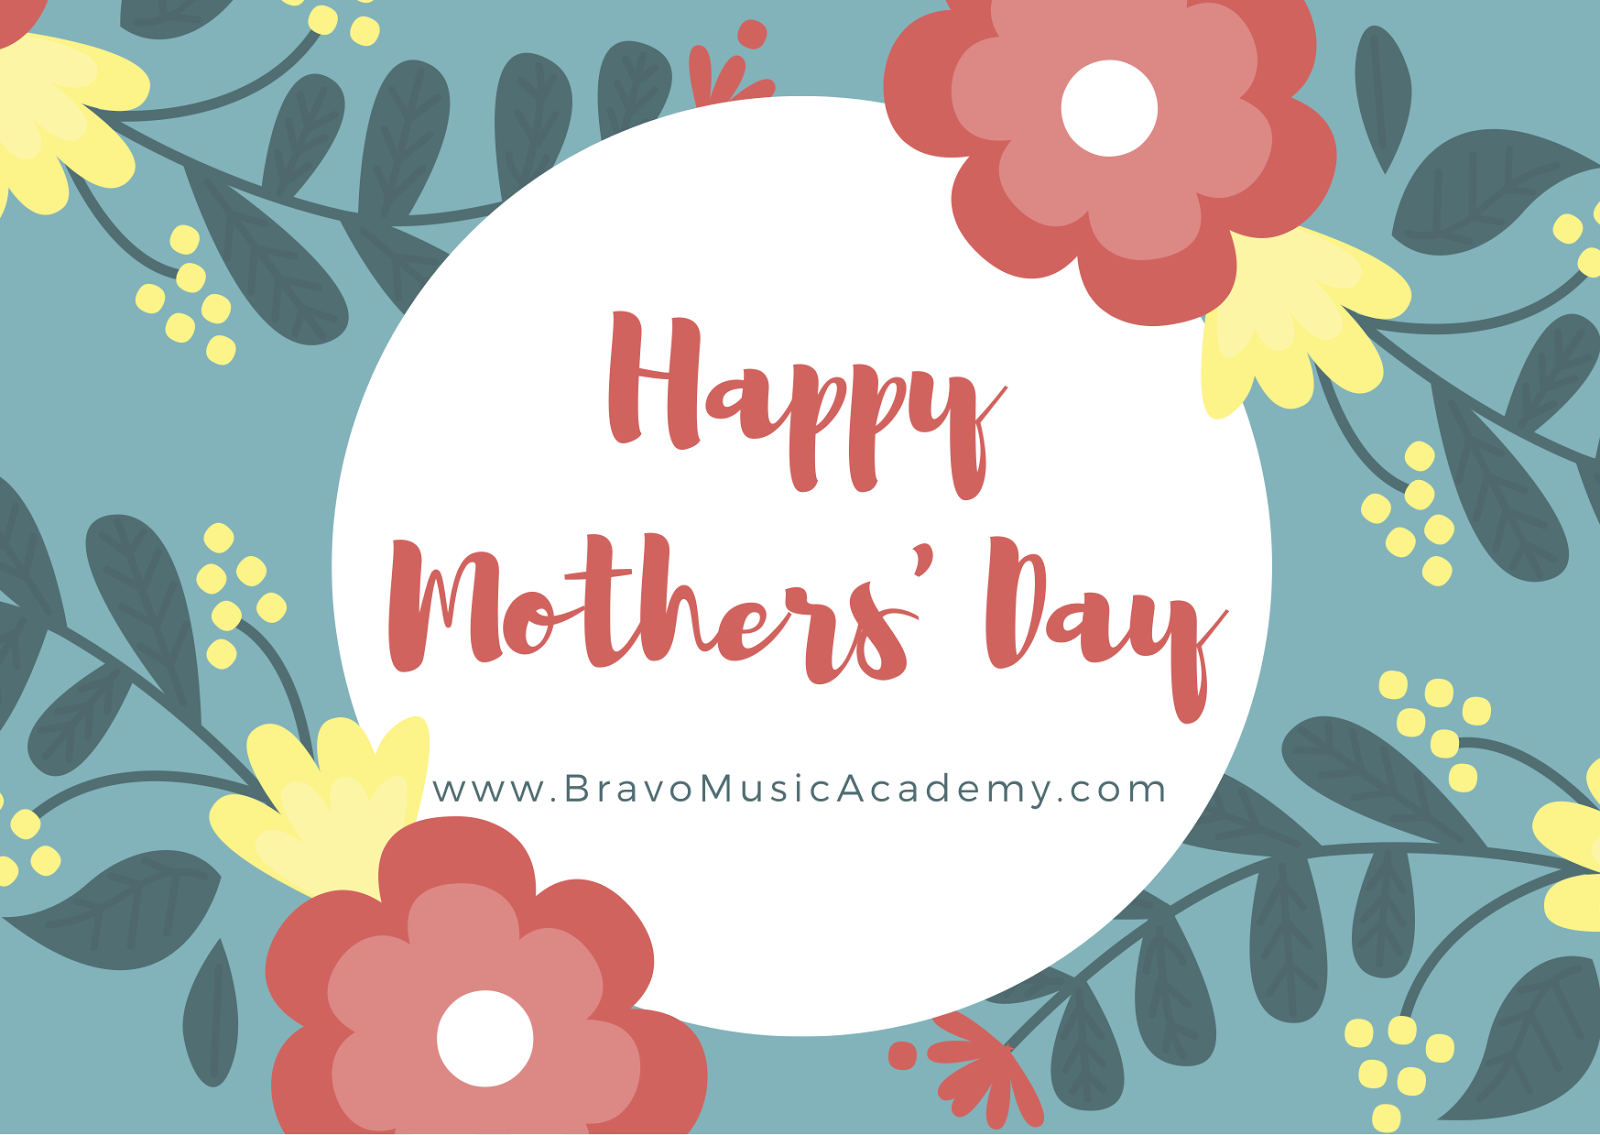 Blog happy mothers day to all of our moms out there we appreciate and thank you for the love and encouragement you give your children as they grow learn kristyandbryce Gallery